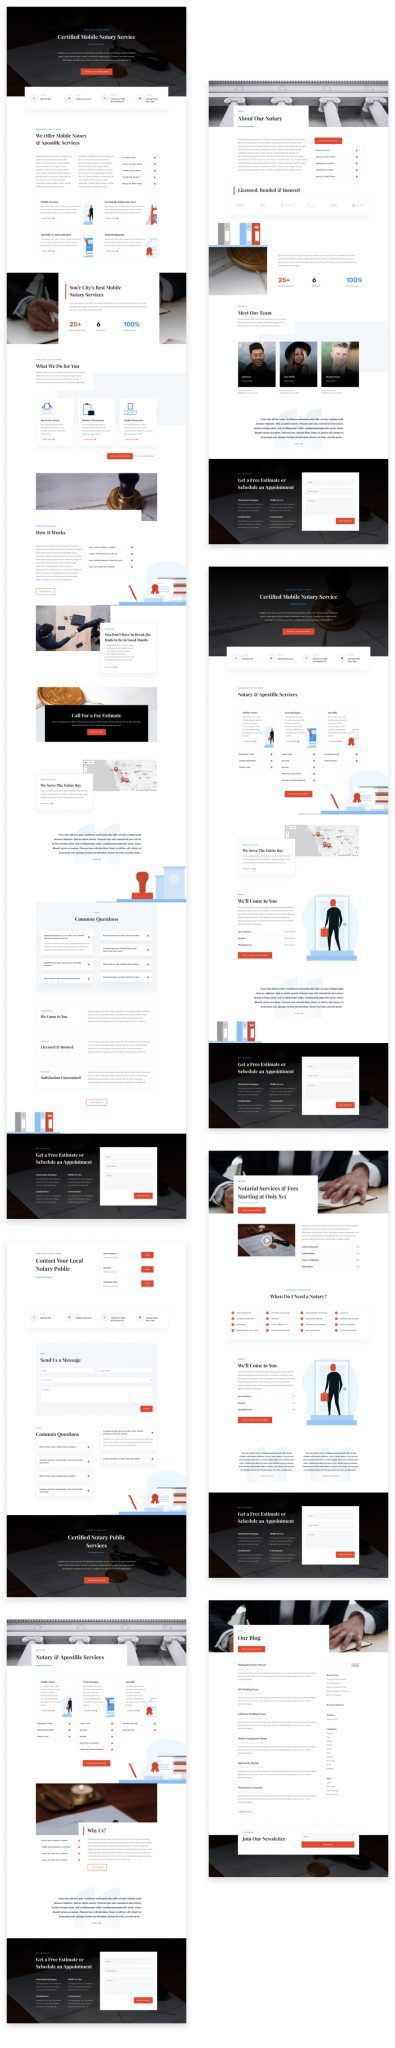 Notary Public Layout Pack